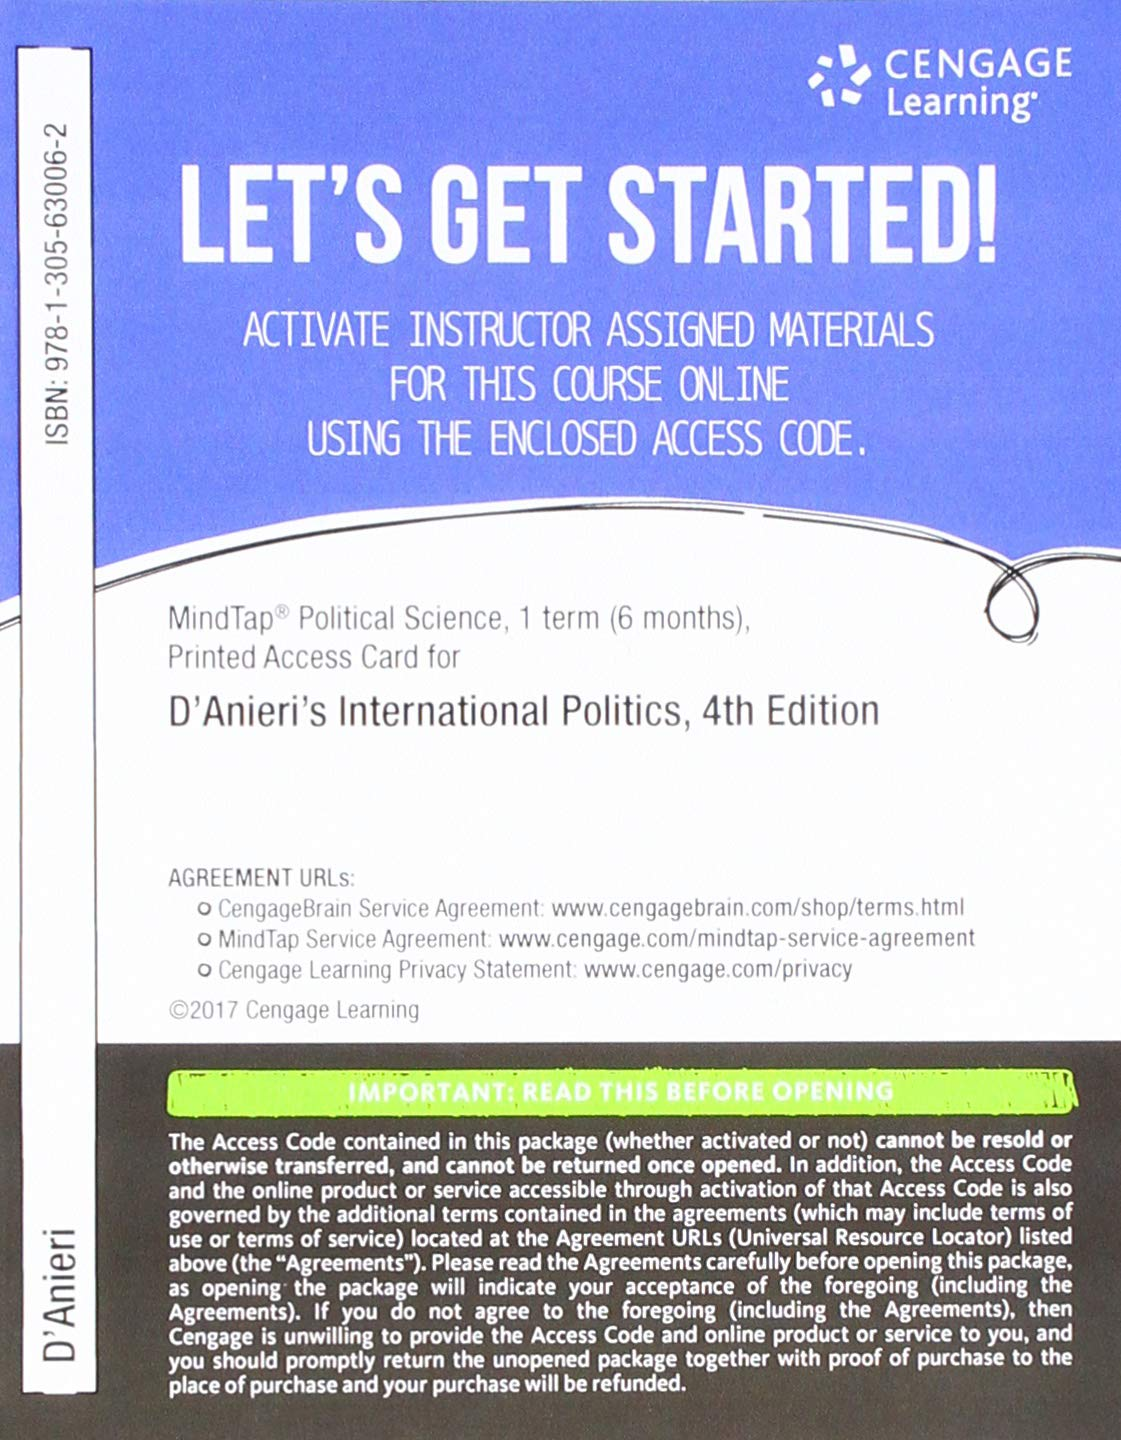 Buy MindTap Political Science, 1 term (6 months) Printed